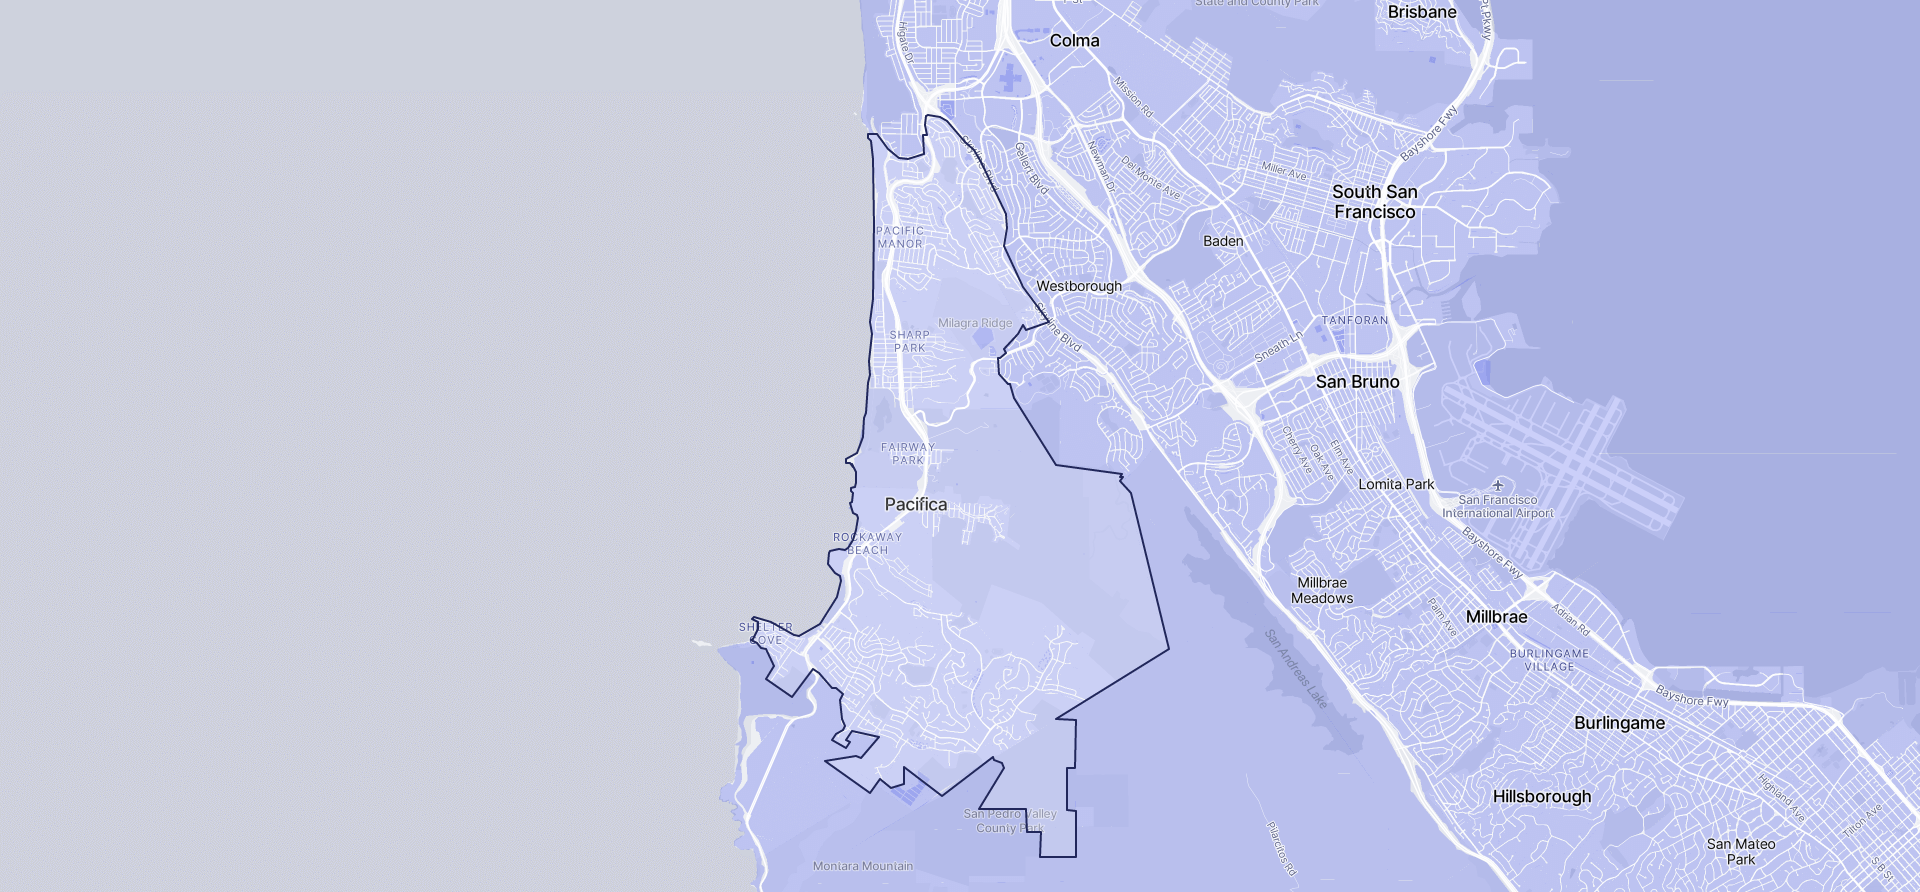 Image of Pacifica boundaries on a map.